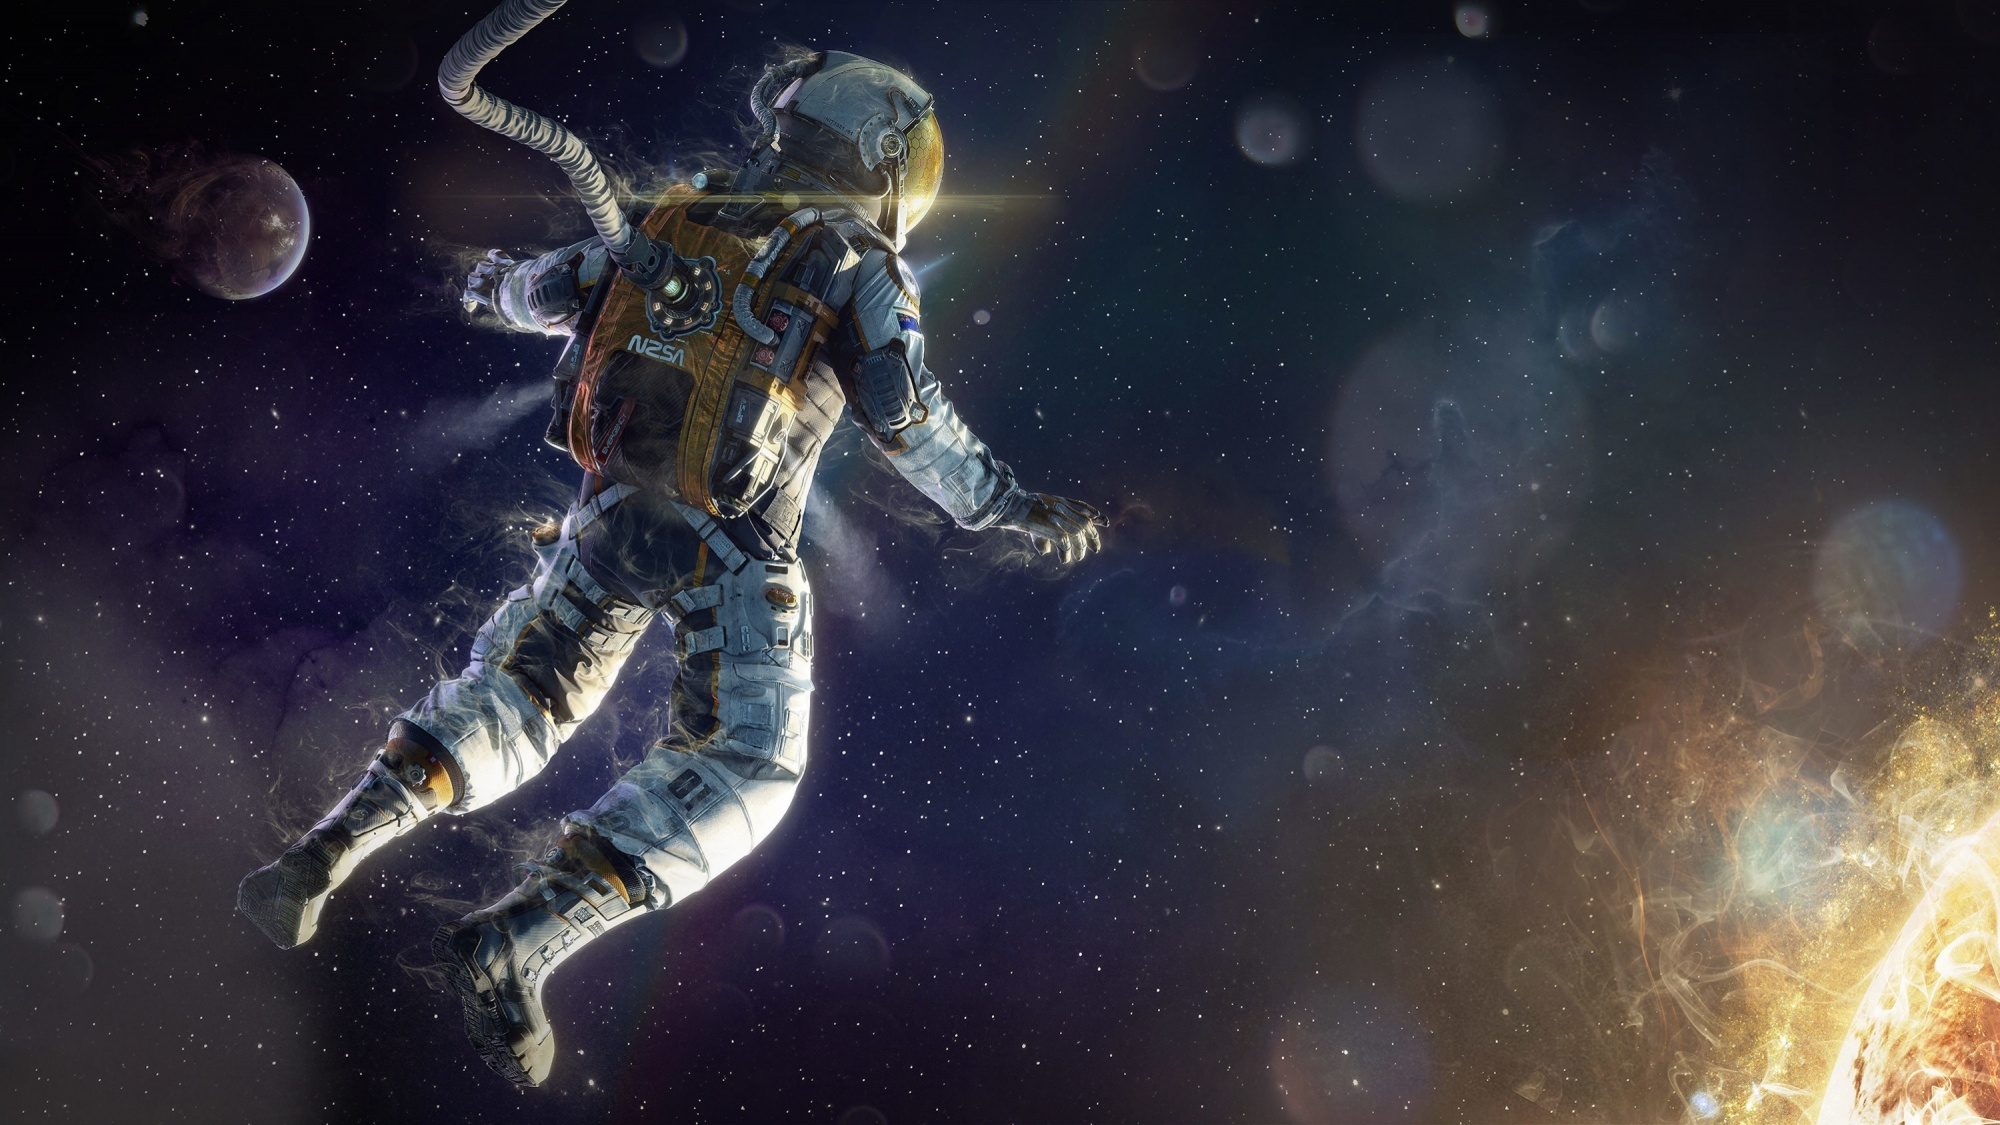 Nasa astronaut covers up evidence of flashing lights